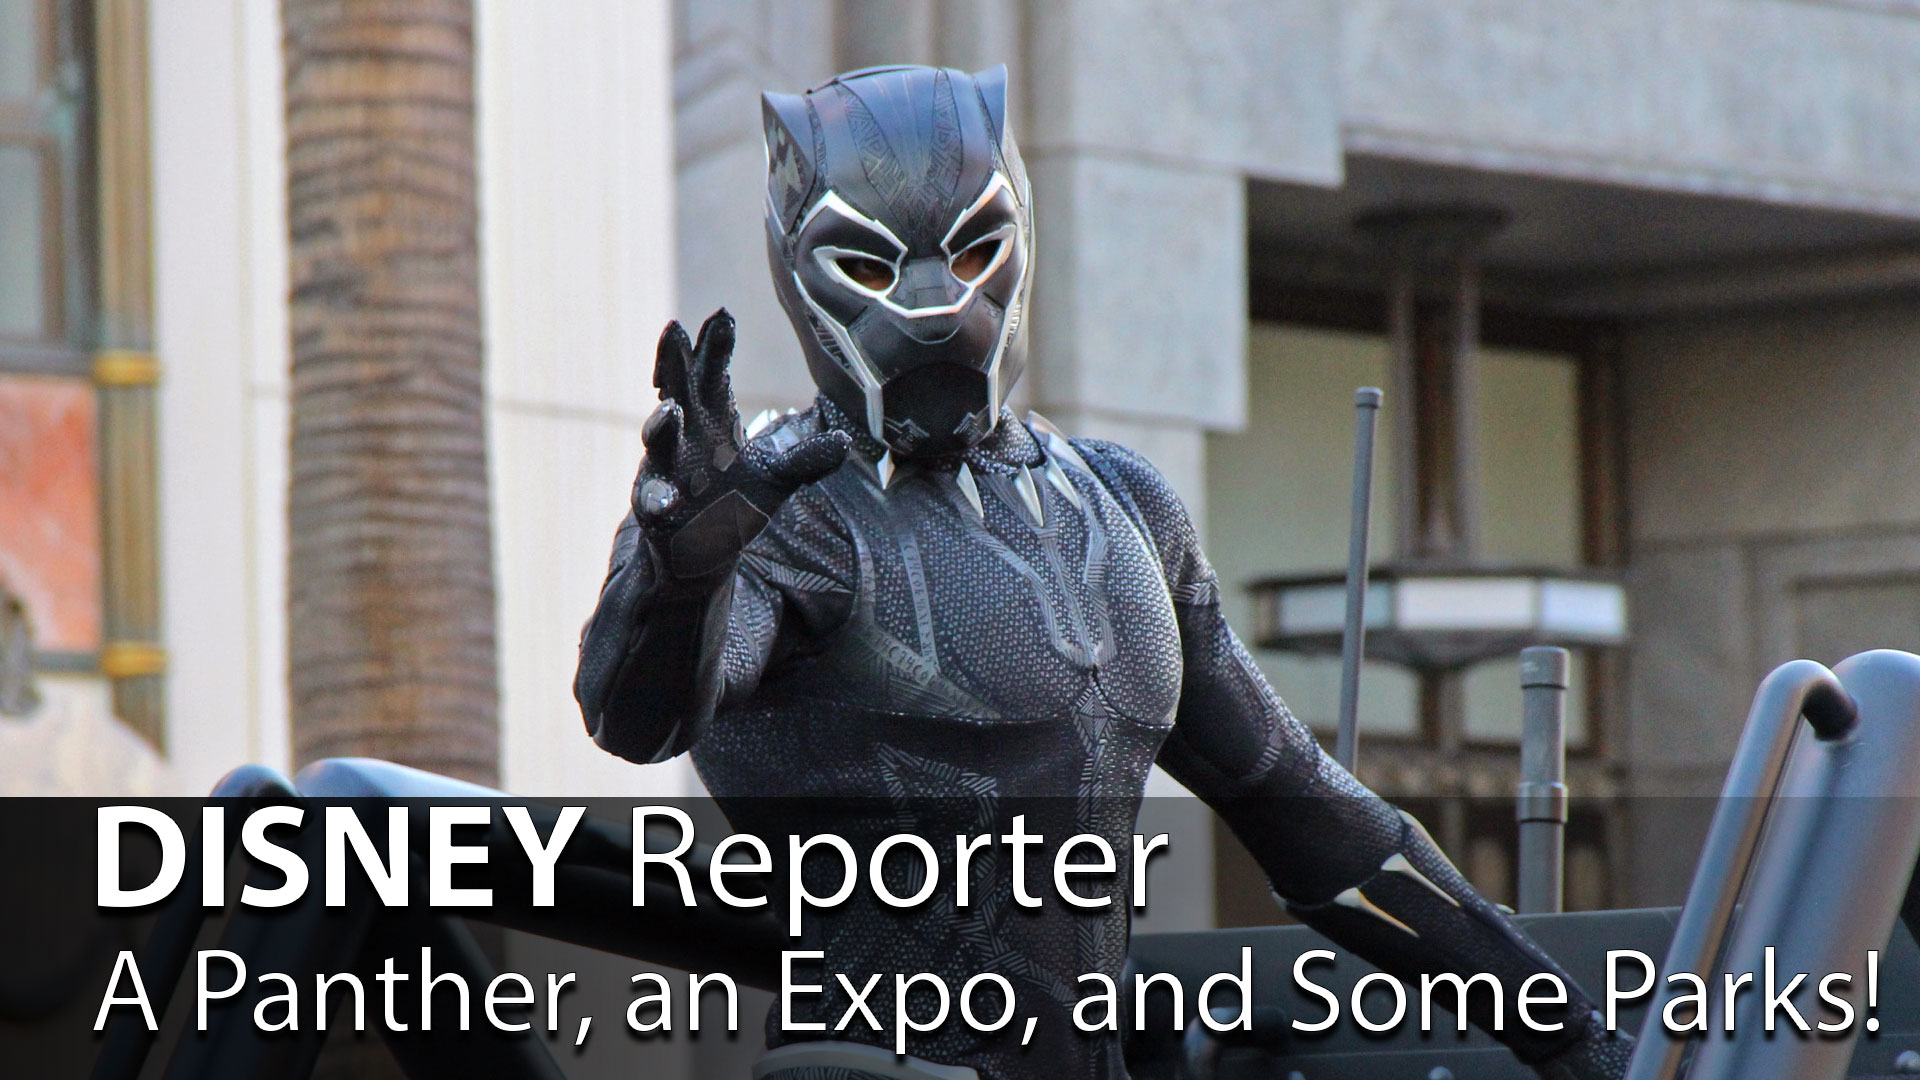 A Panther, an Expo, and Some Parks! - DISNEY Reporter